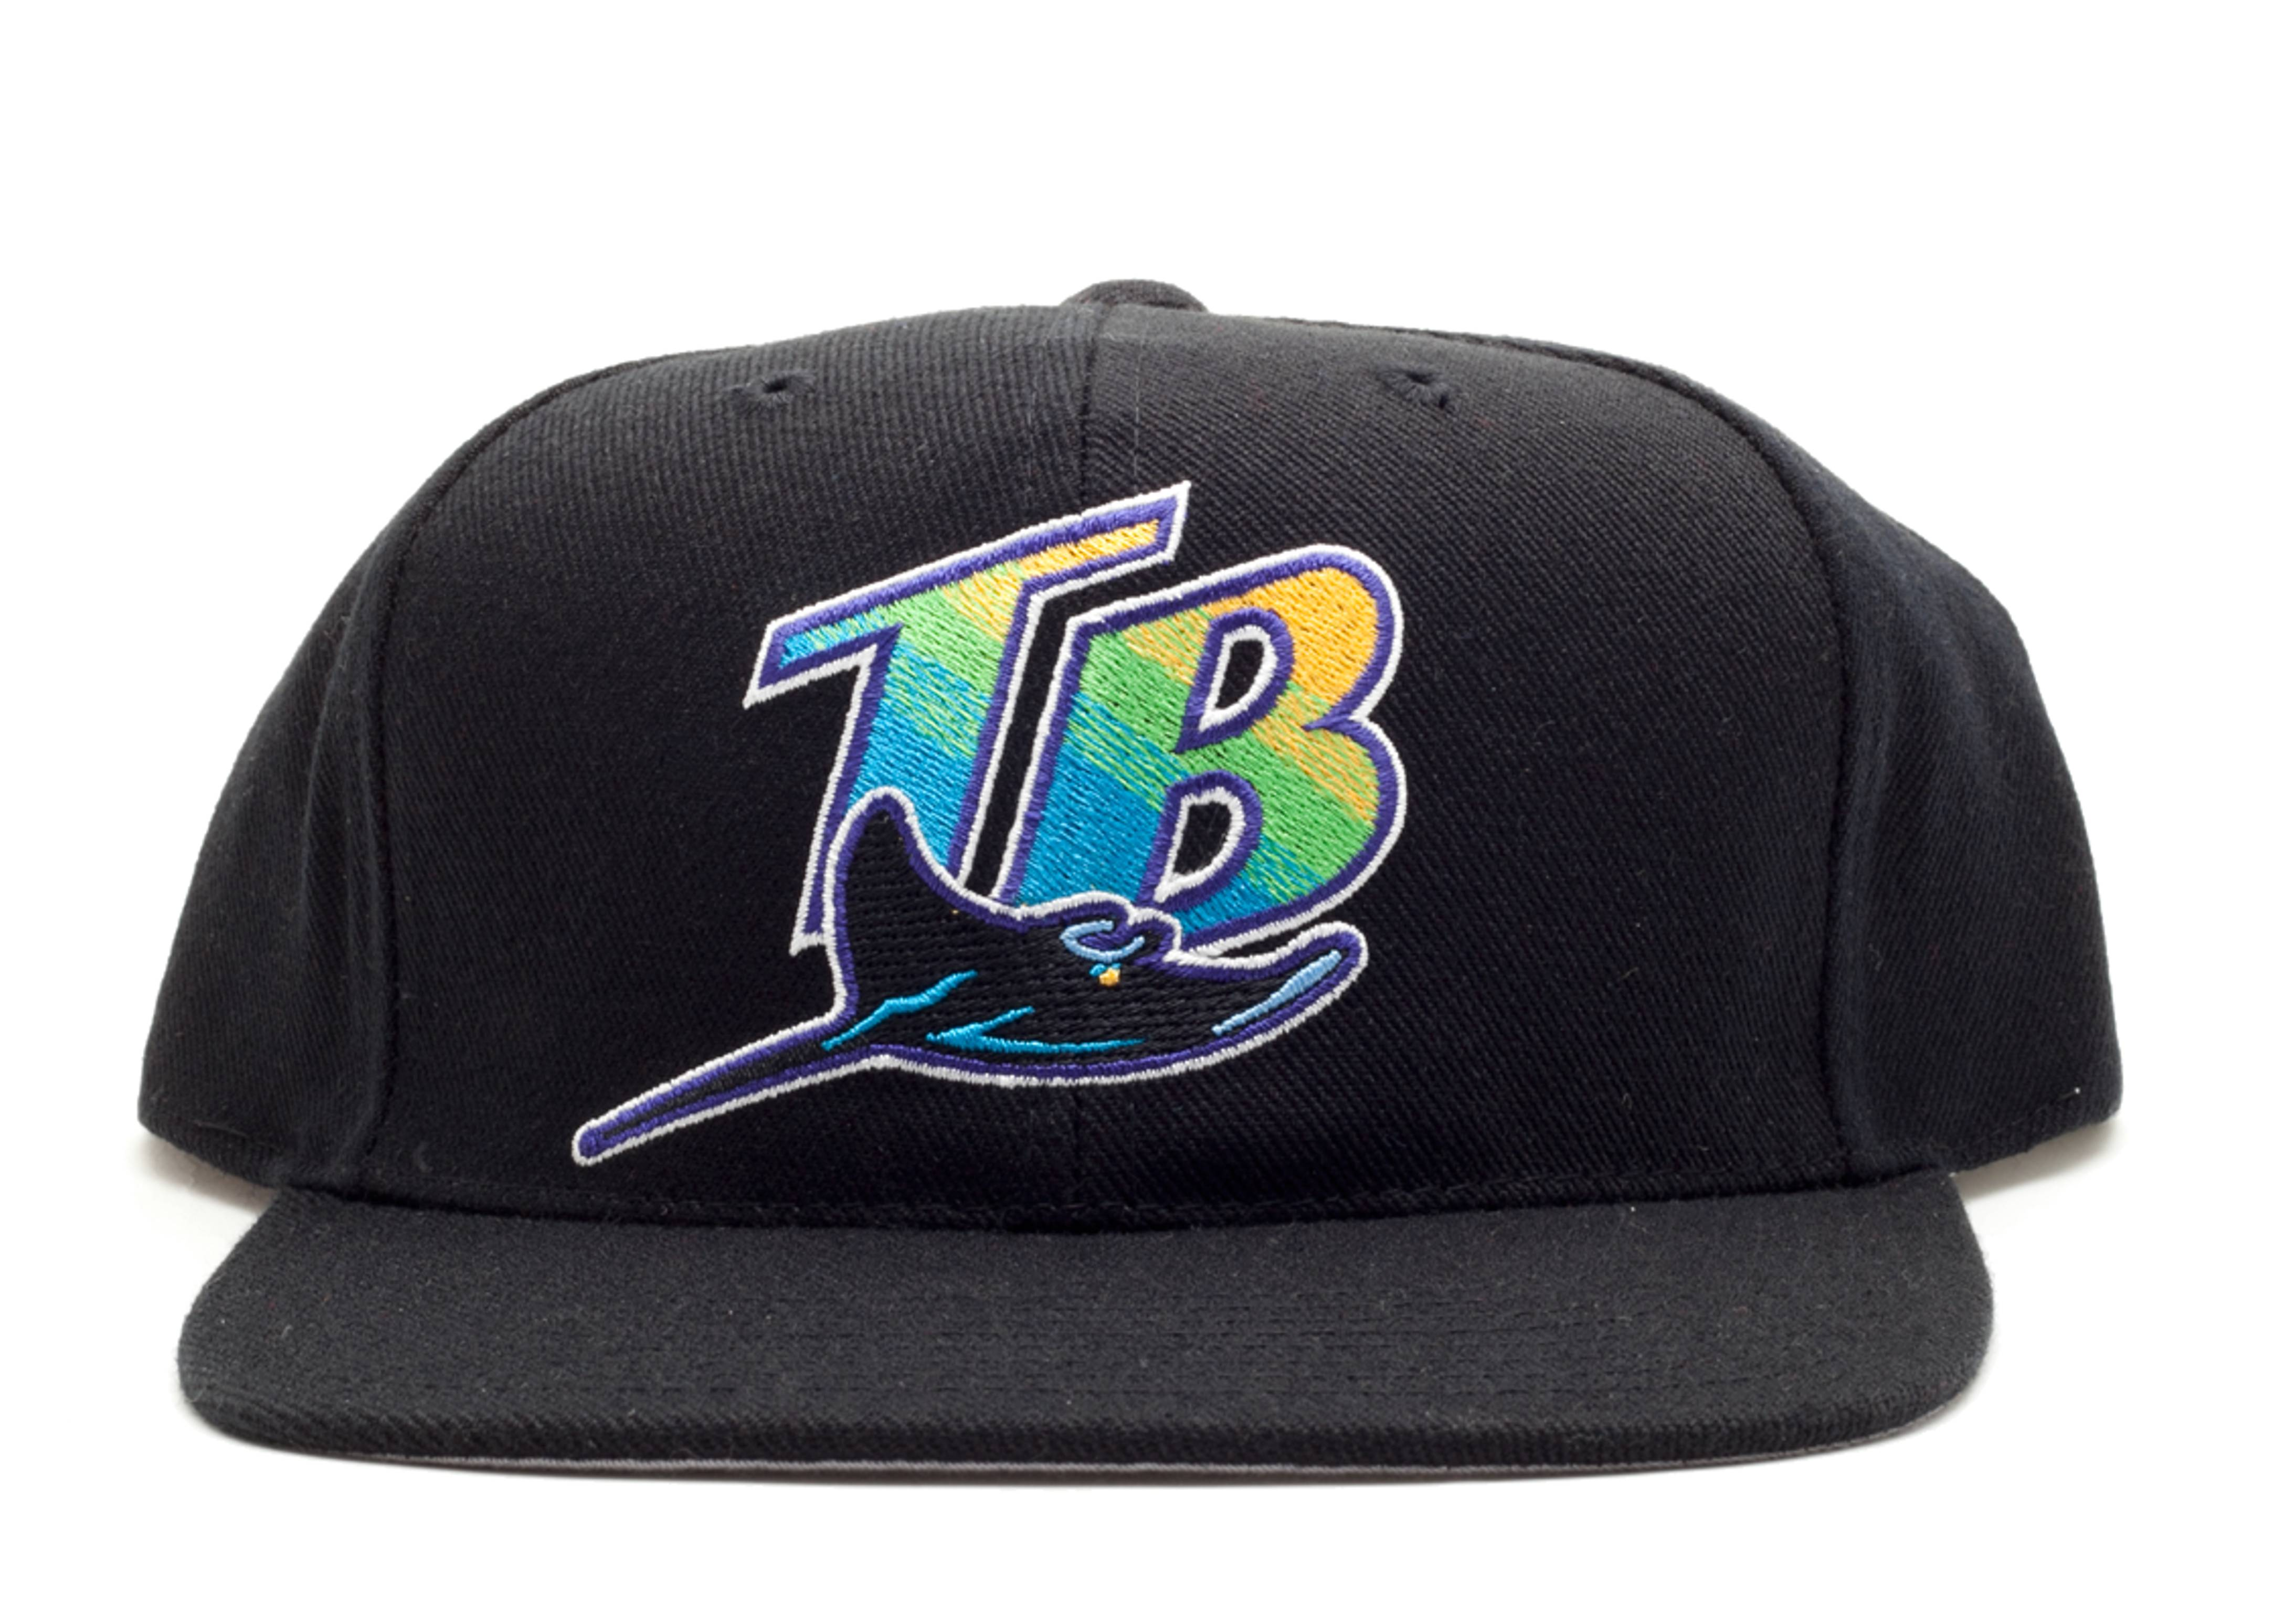 tampa bay rays snap-back